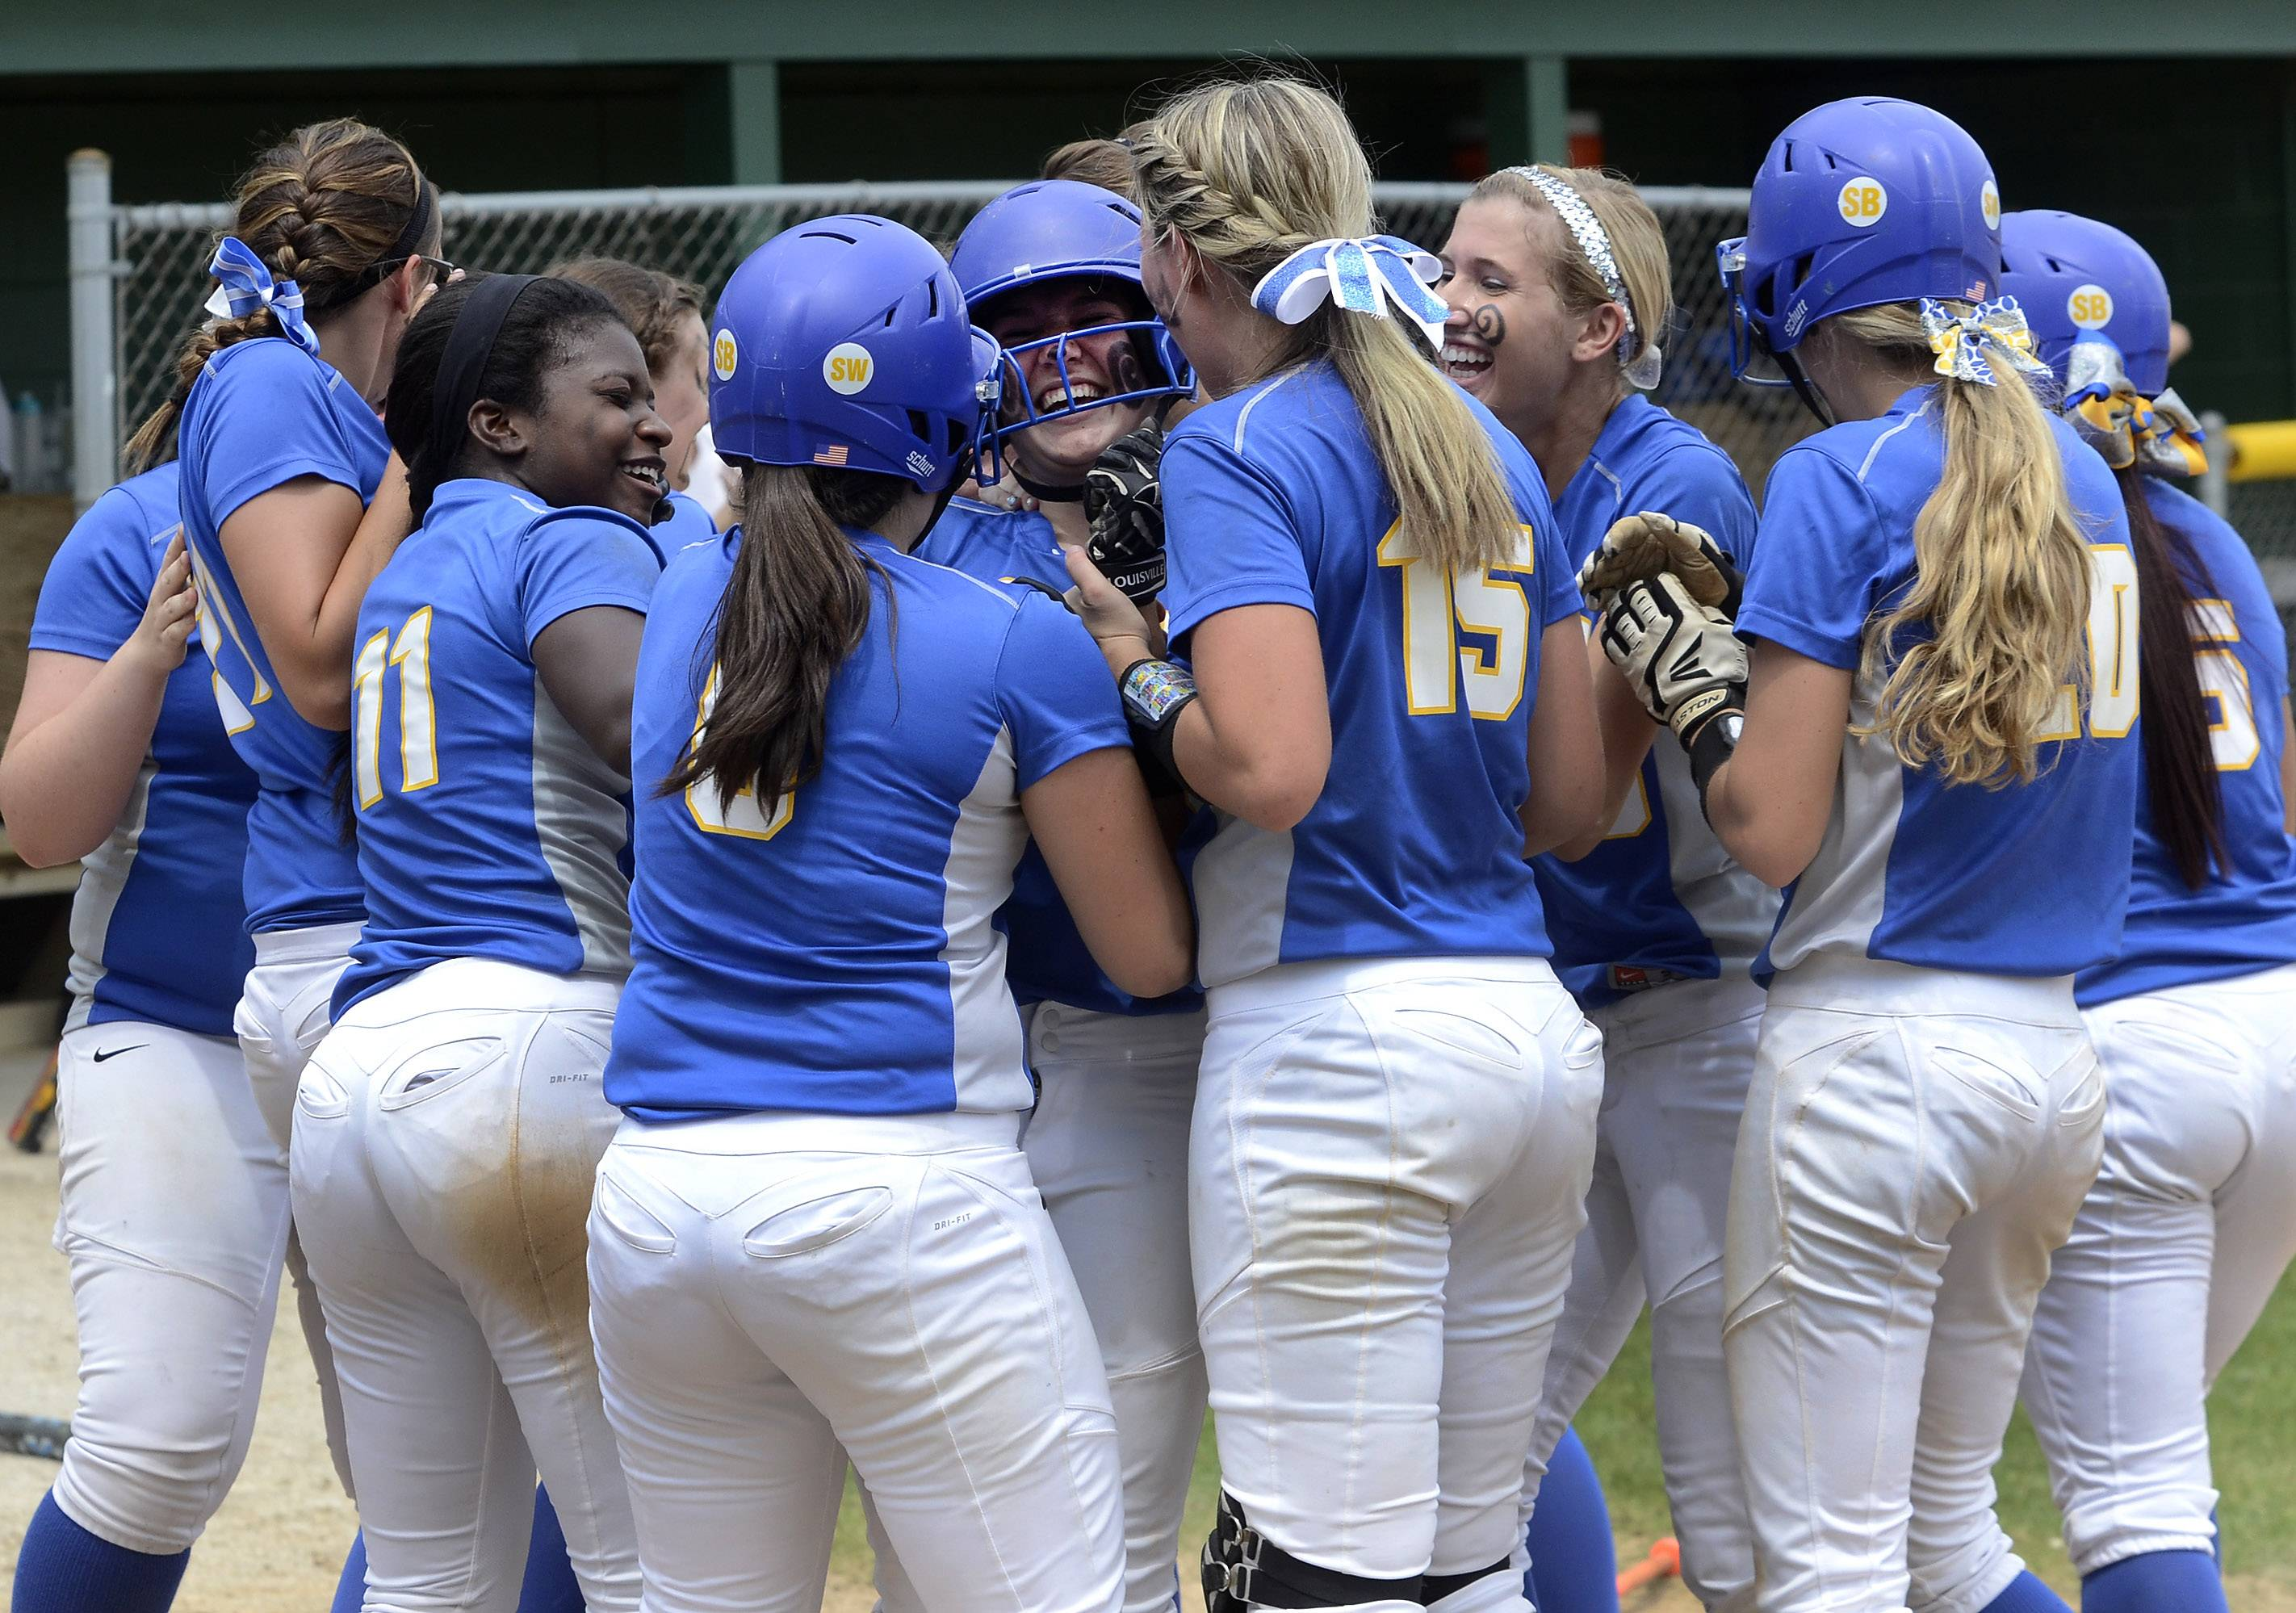 Warren's Rachele Belletini, center, is mobbed after belting a 3-run home run in the fourth inning of the Class 4A Stevenson softball sectional final.